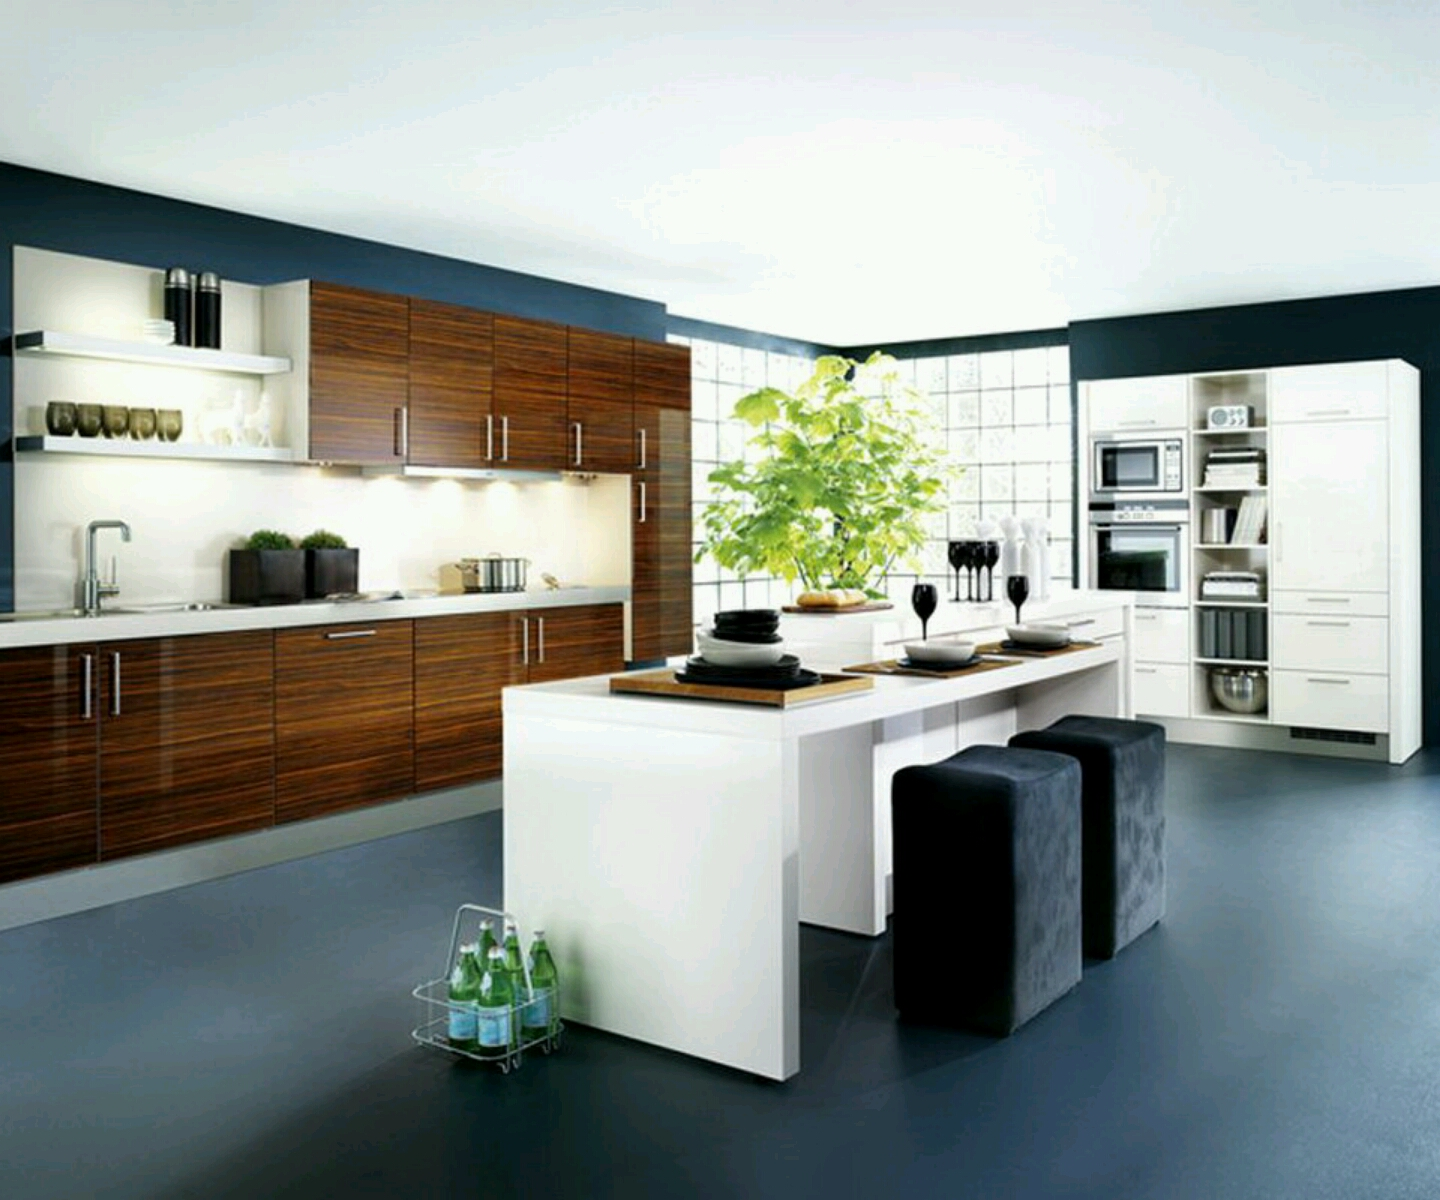 New home designs latest kitchen cabinets designs modern for Latest home kitchen designs